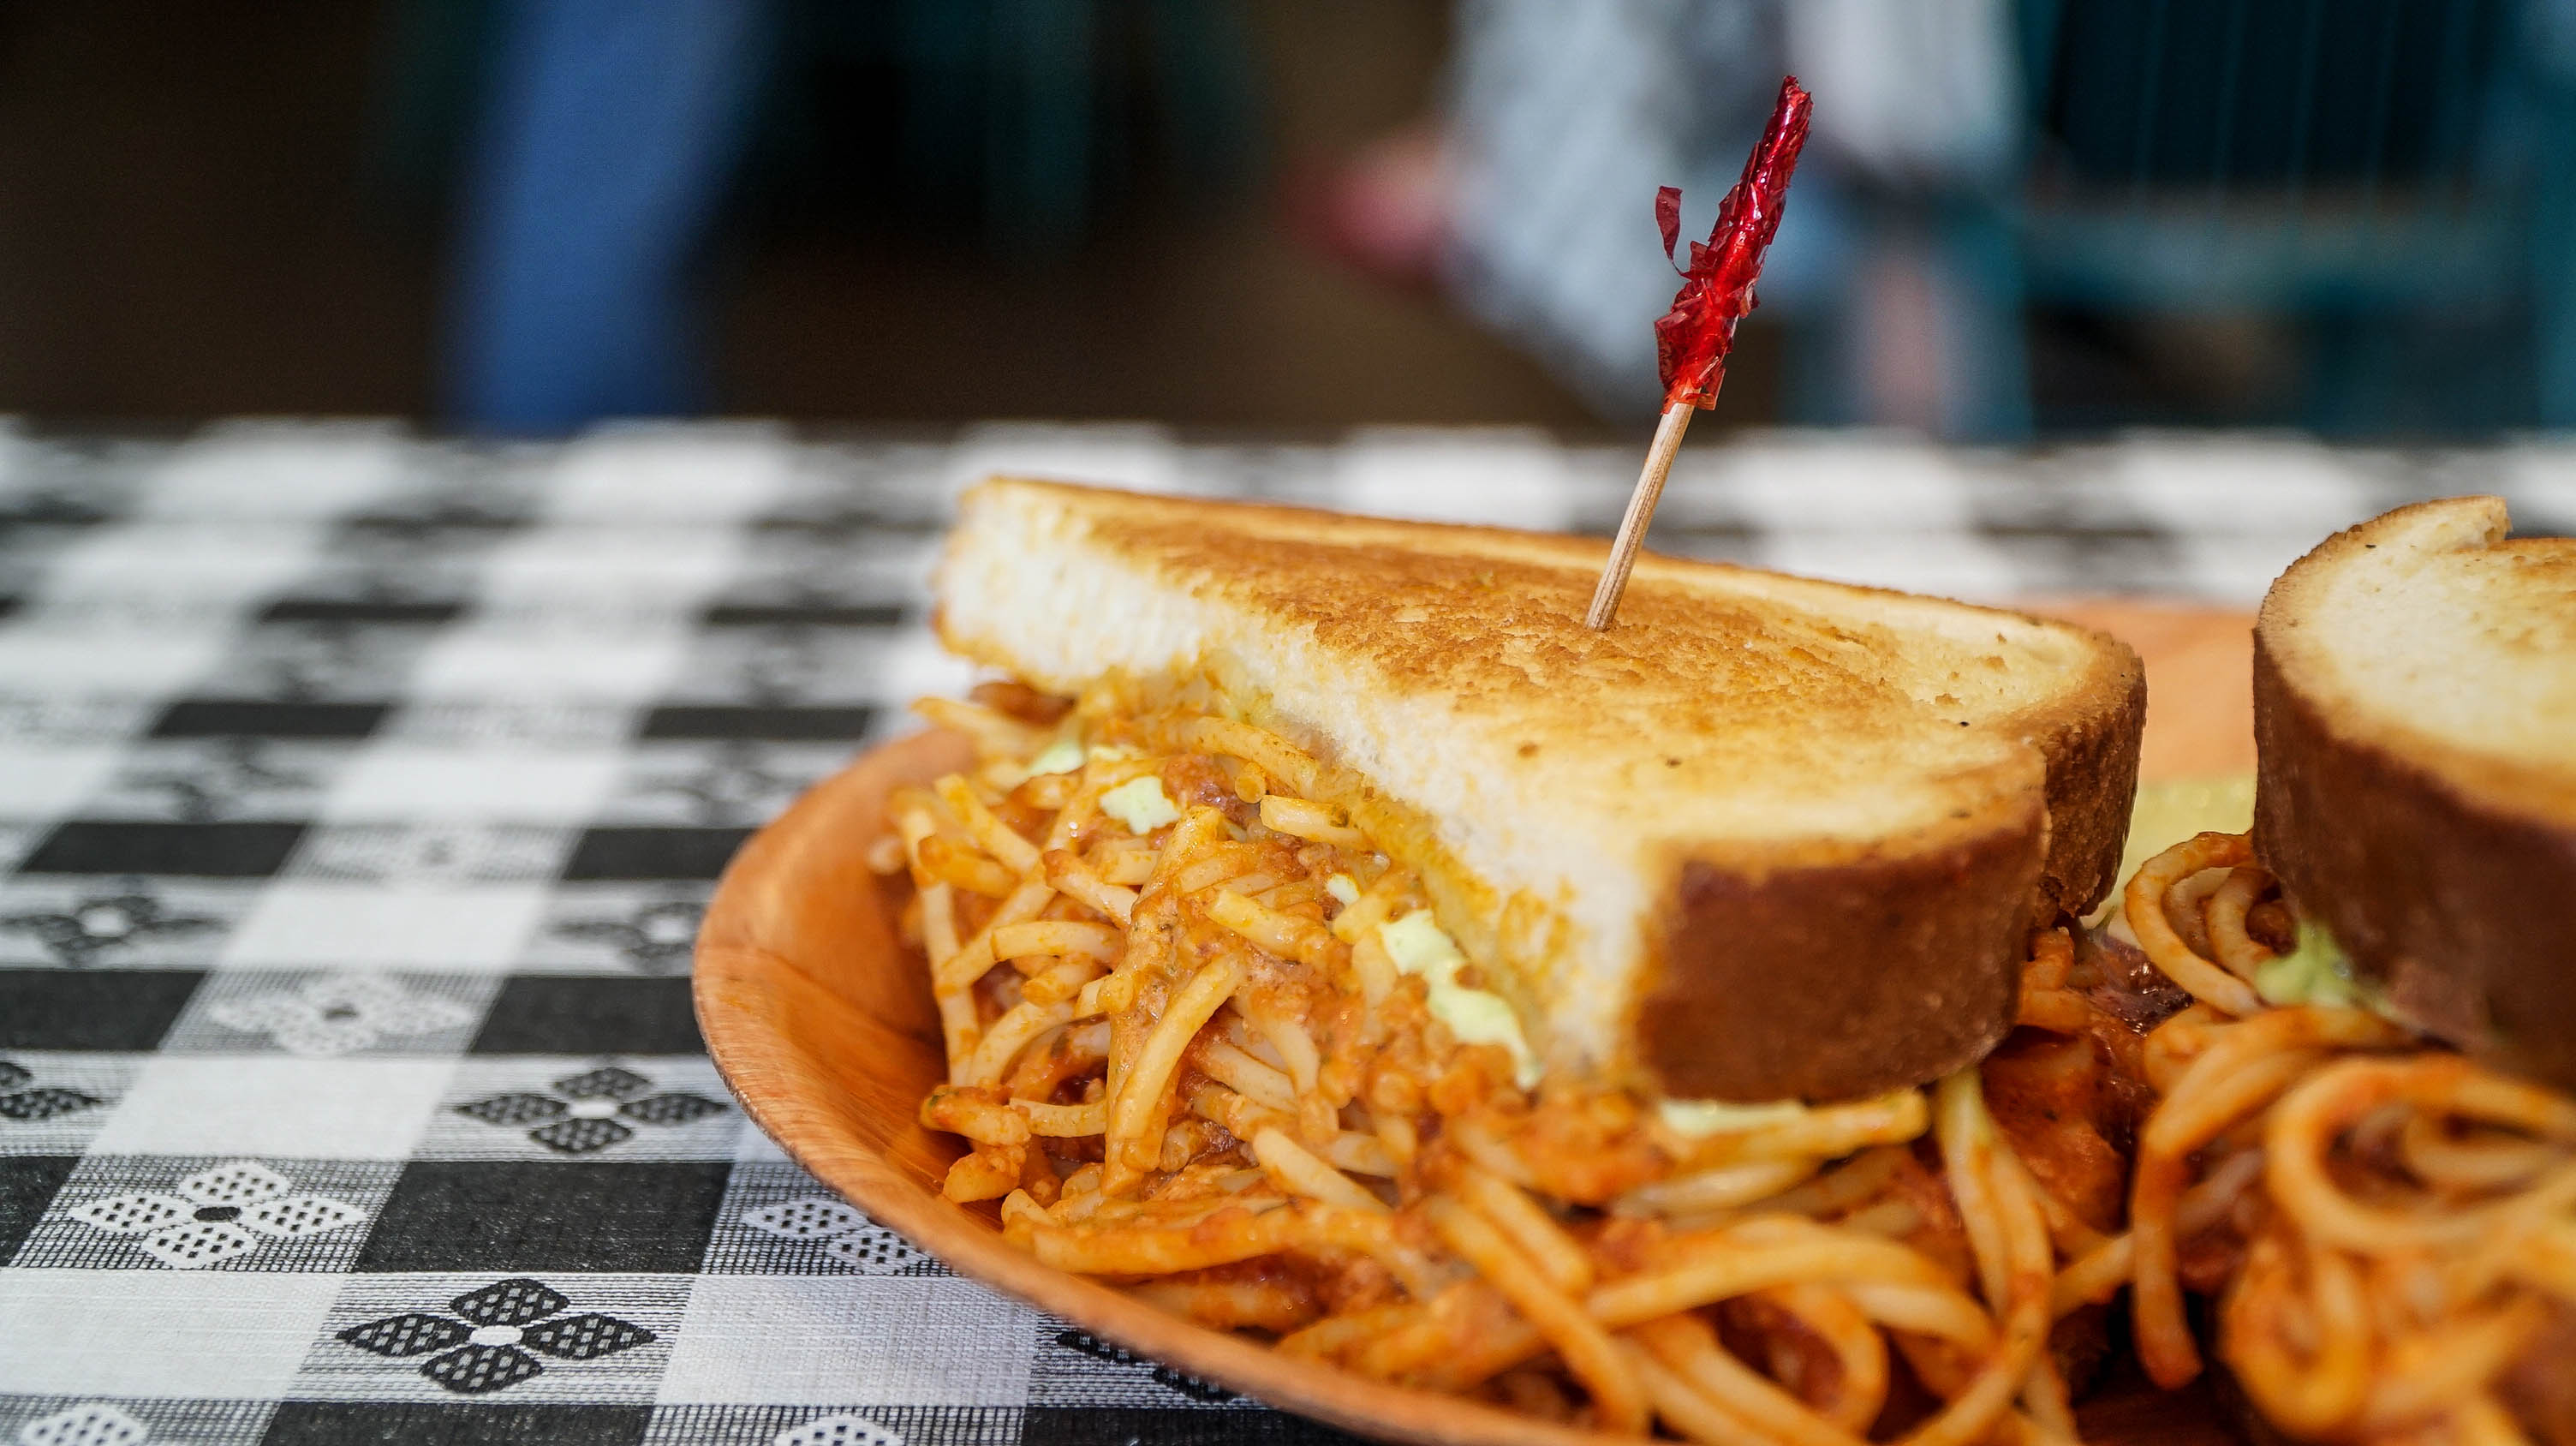 Spaghetti Sandwich - Not Your Typical Deli